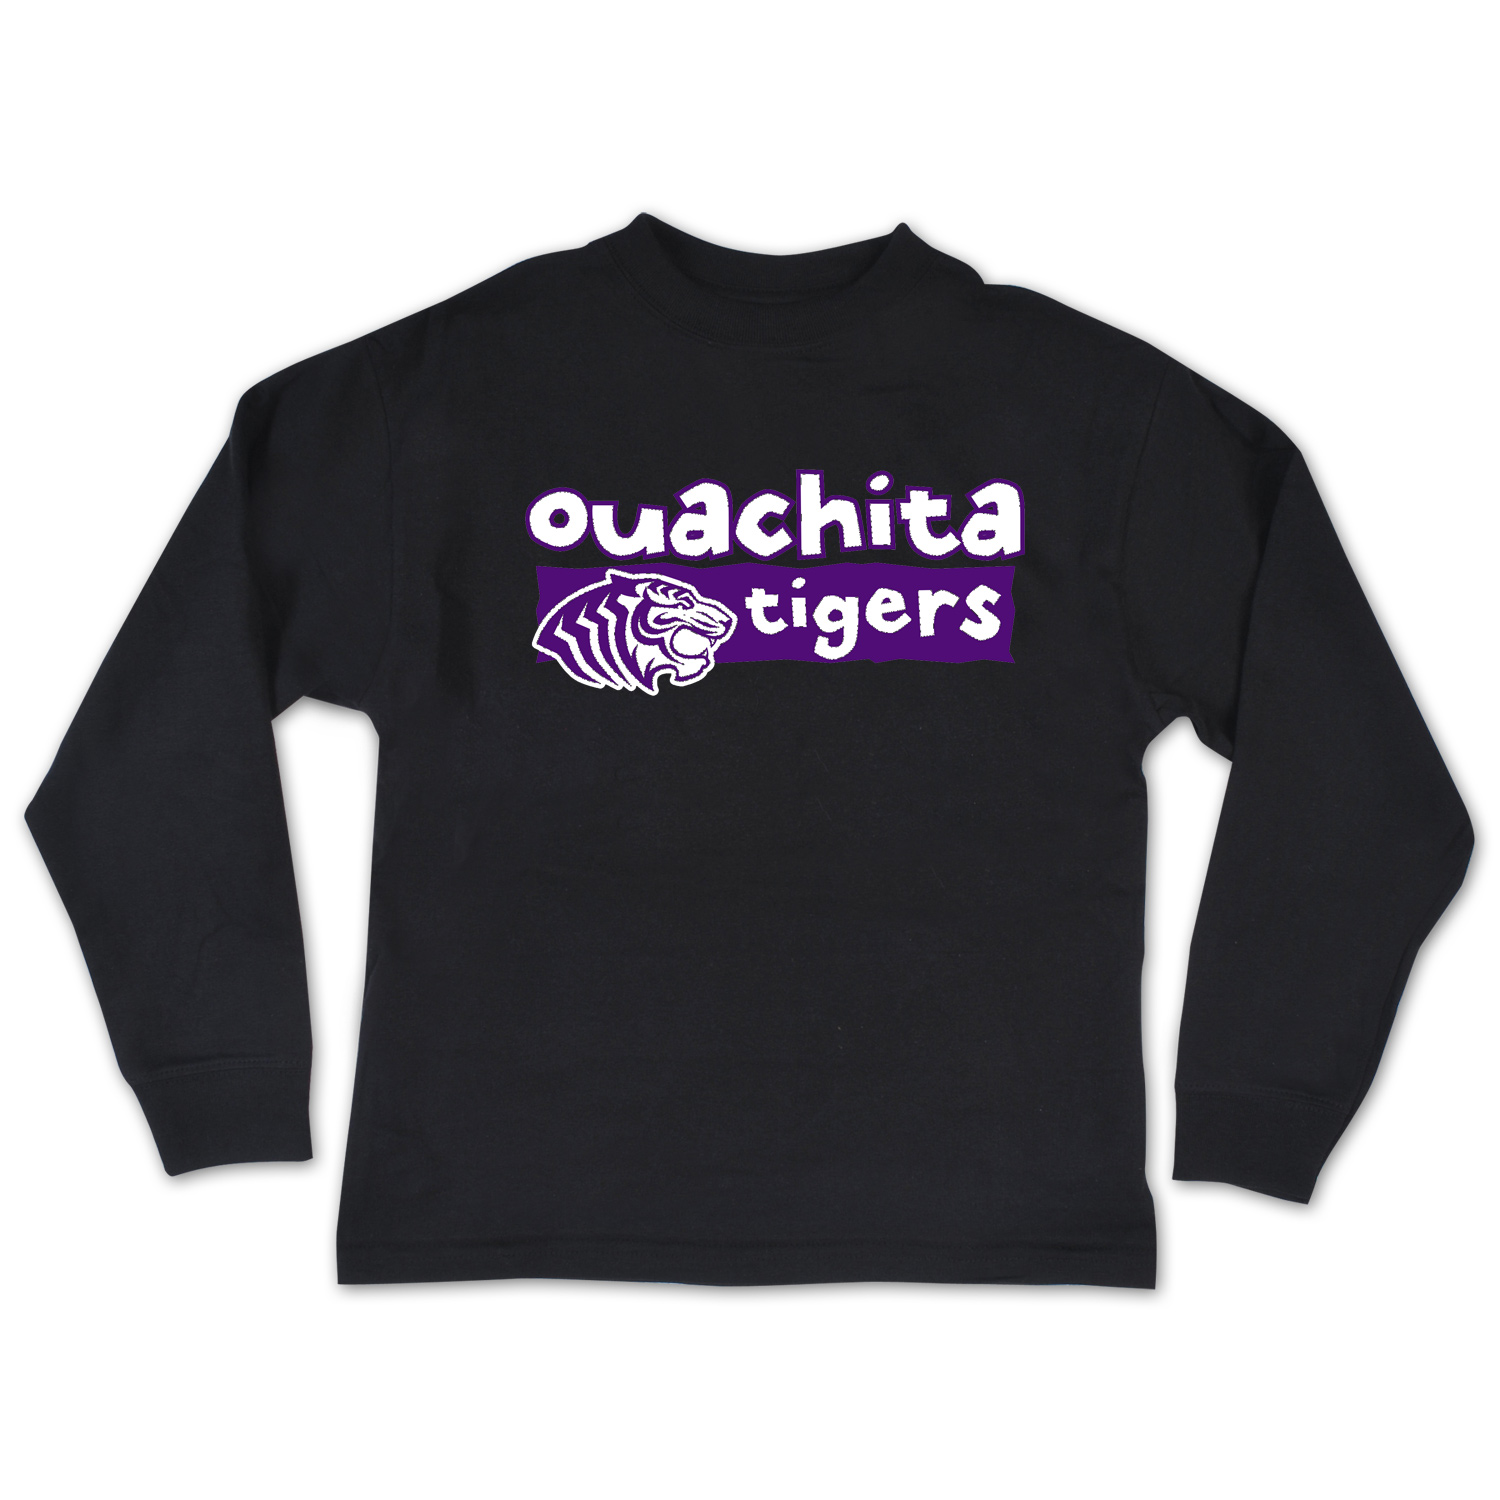 OUACHITA TIGERS YOUTH BOYS LS TEE